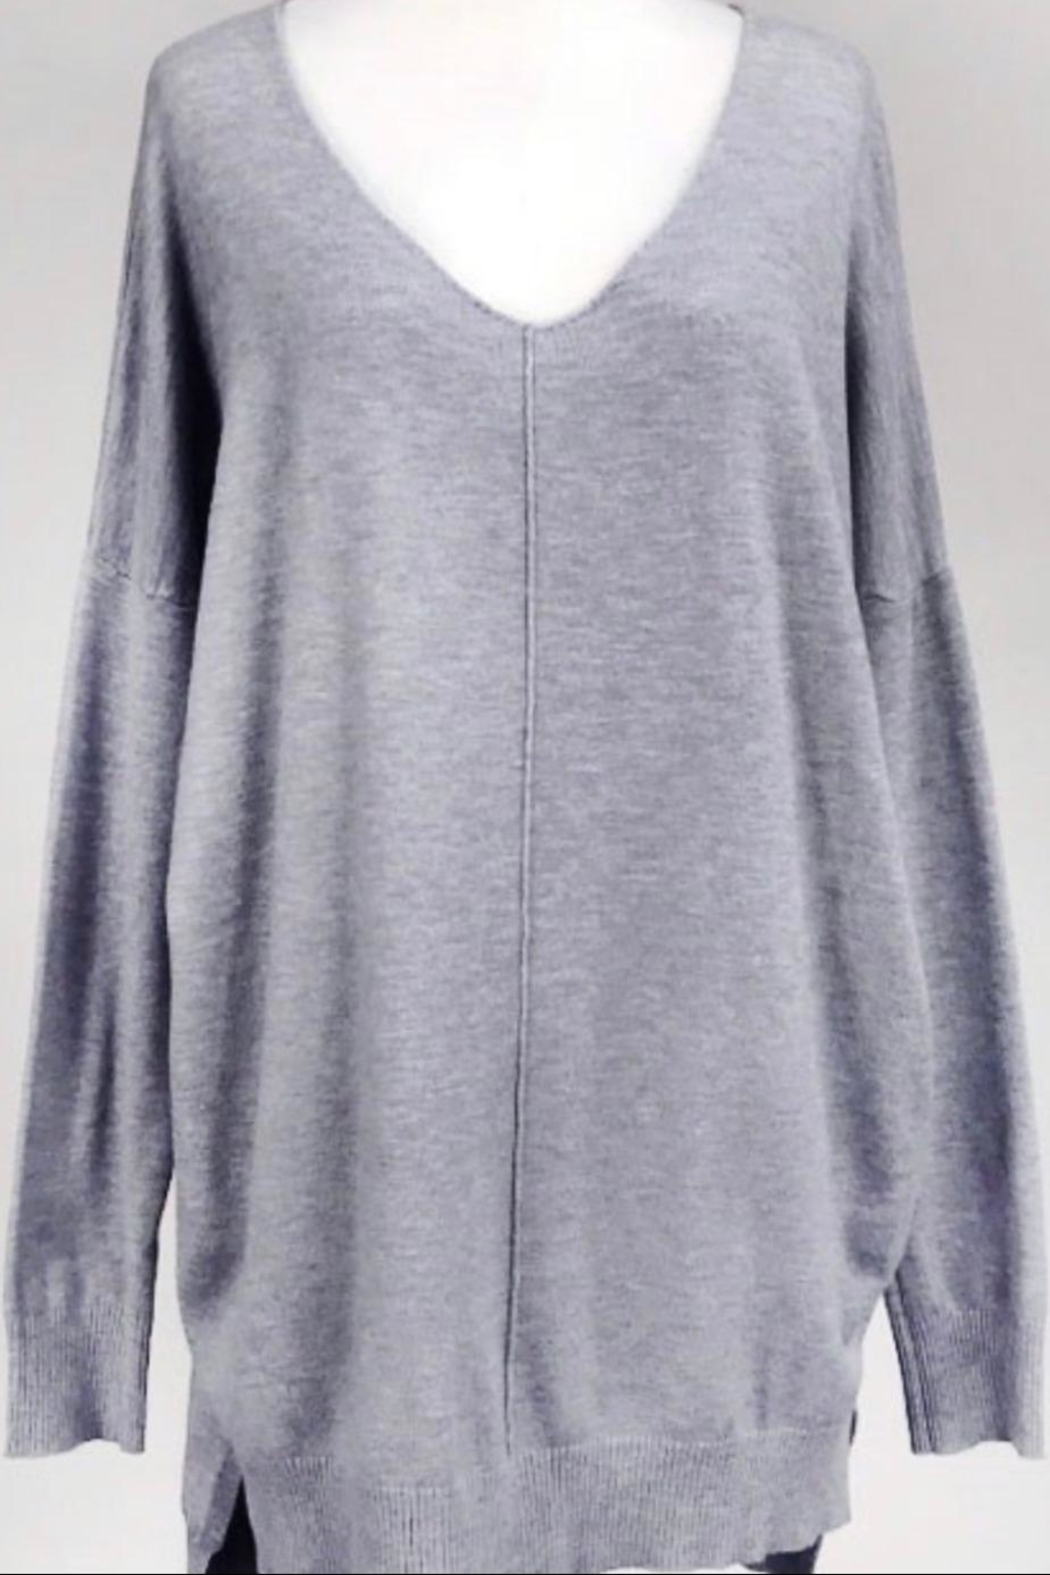 693f19cb5 Dreamers Grey Soft Sweater from Wisconsin by Apricot Lane ...